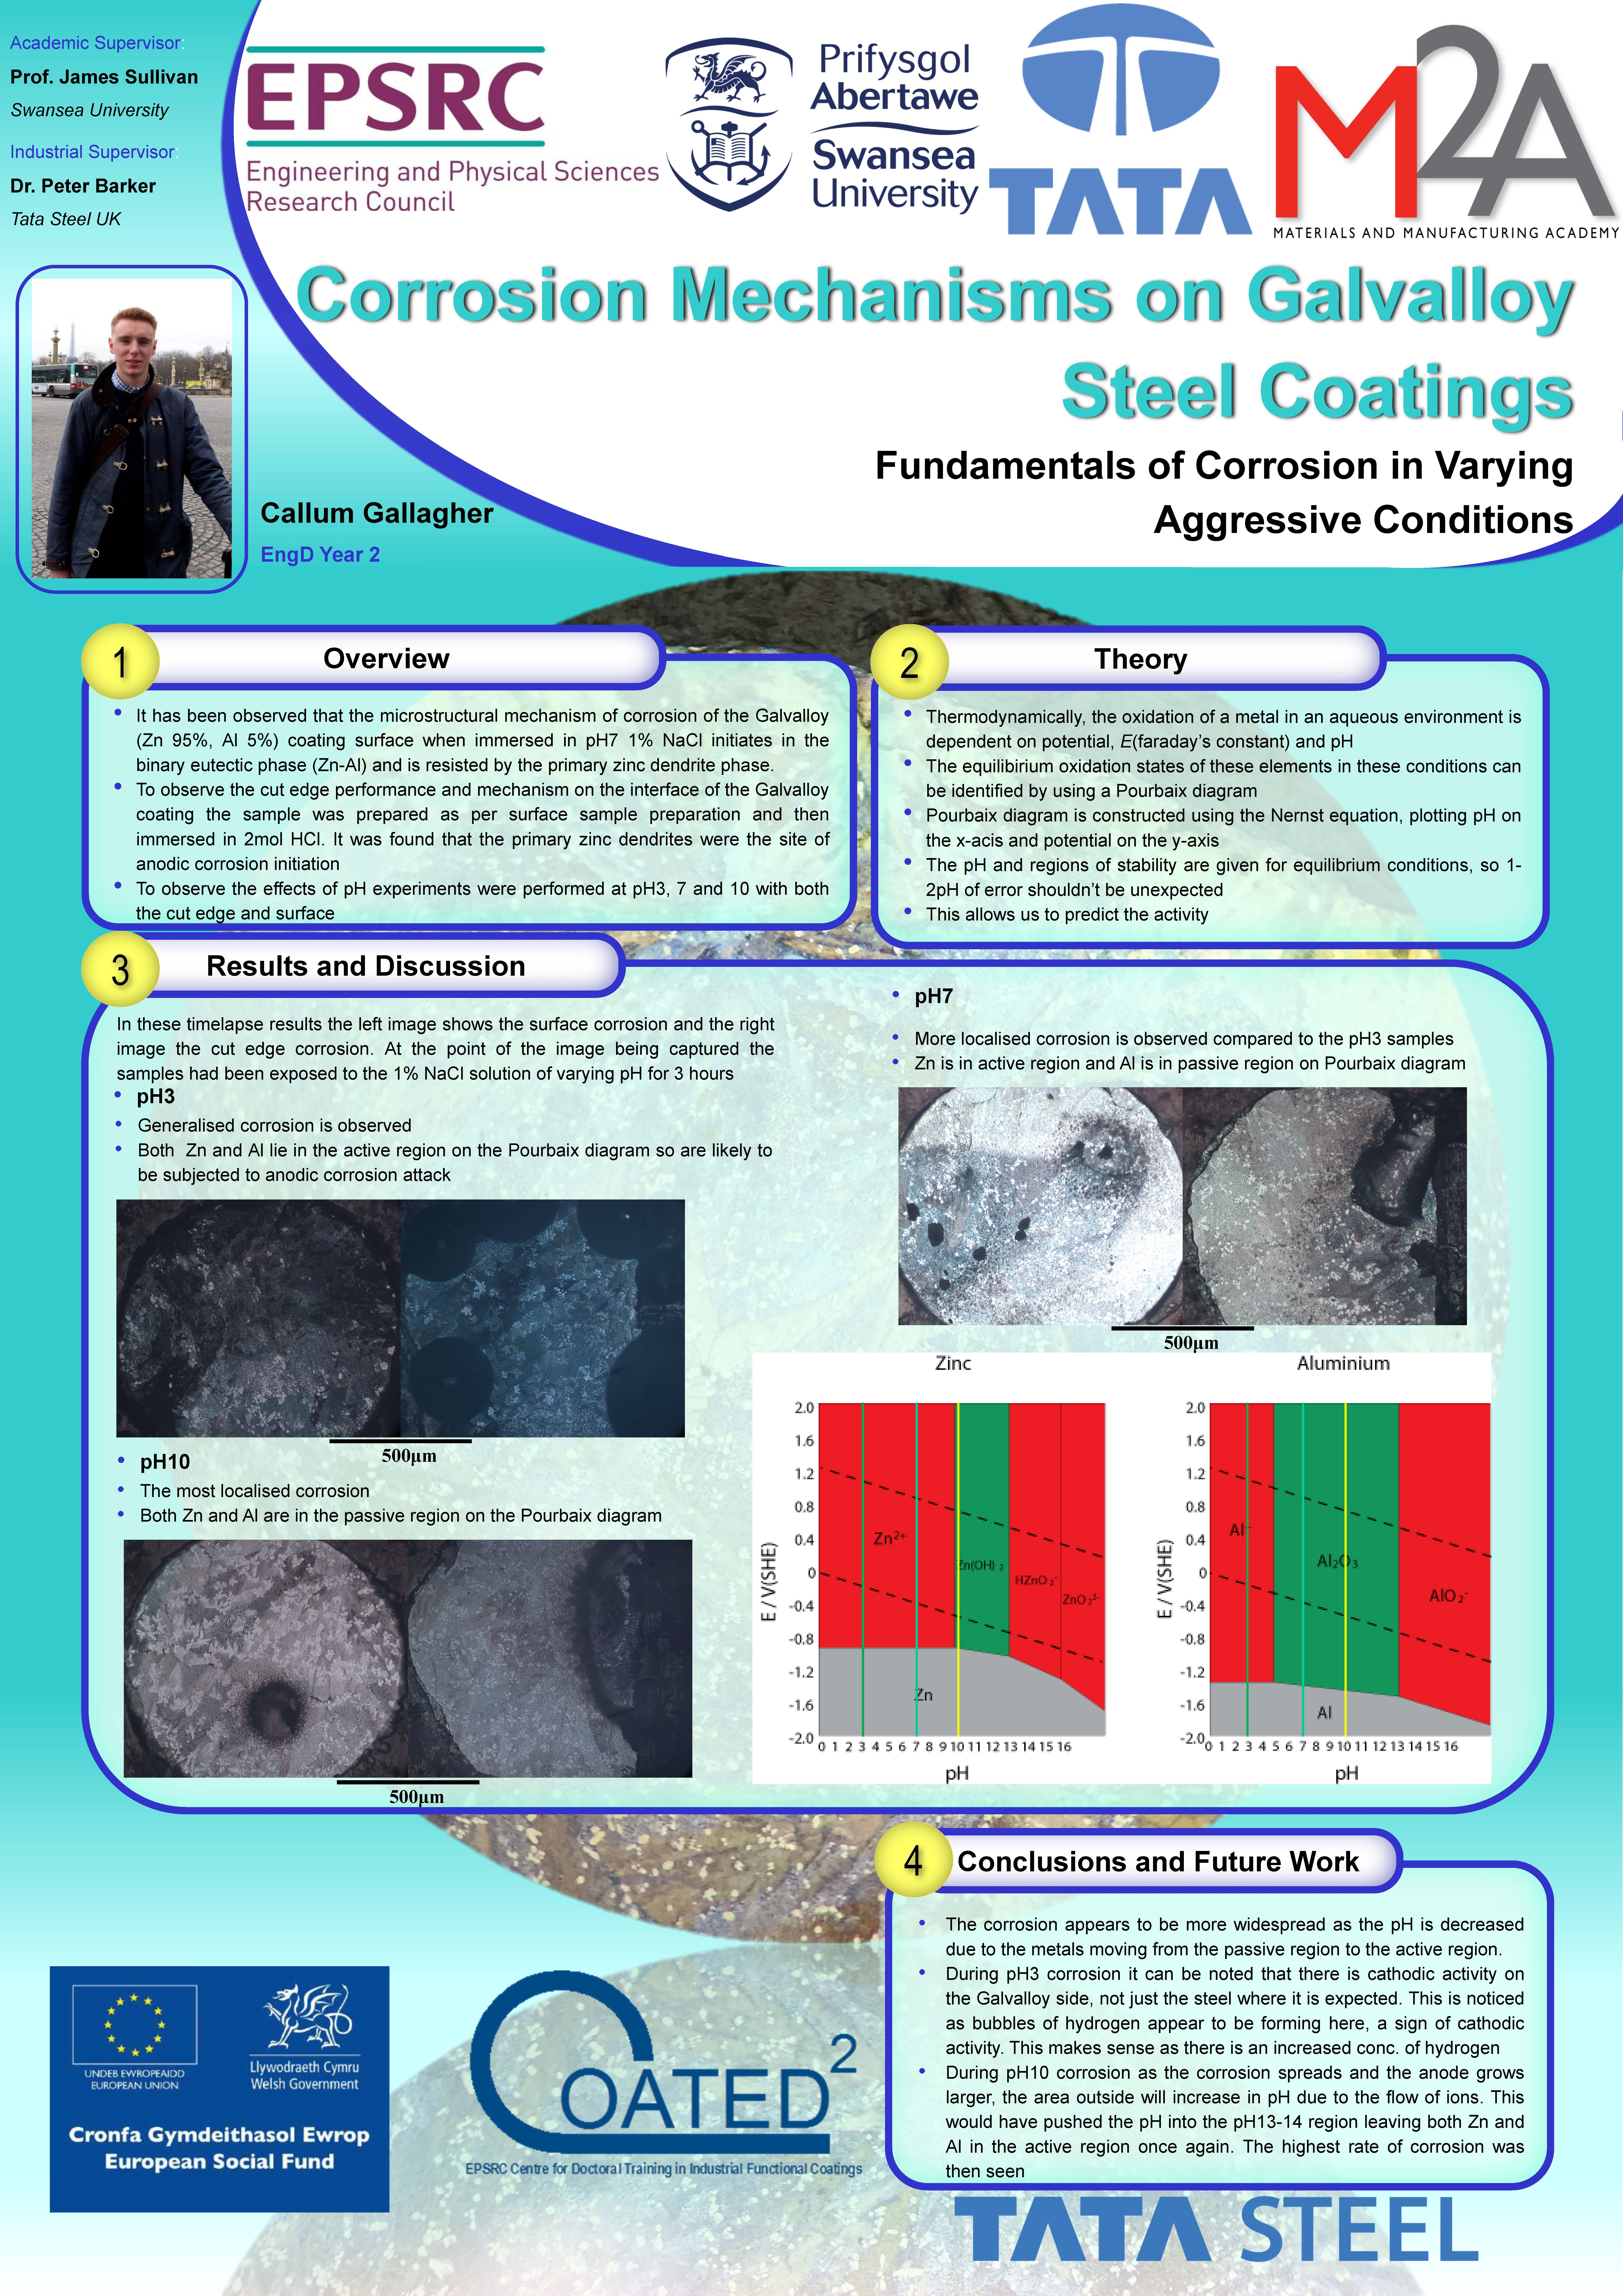 Corrosion Mechanisms on Galvalloy Steel Coatings